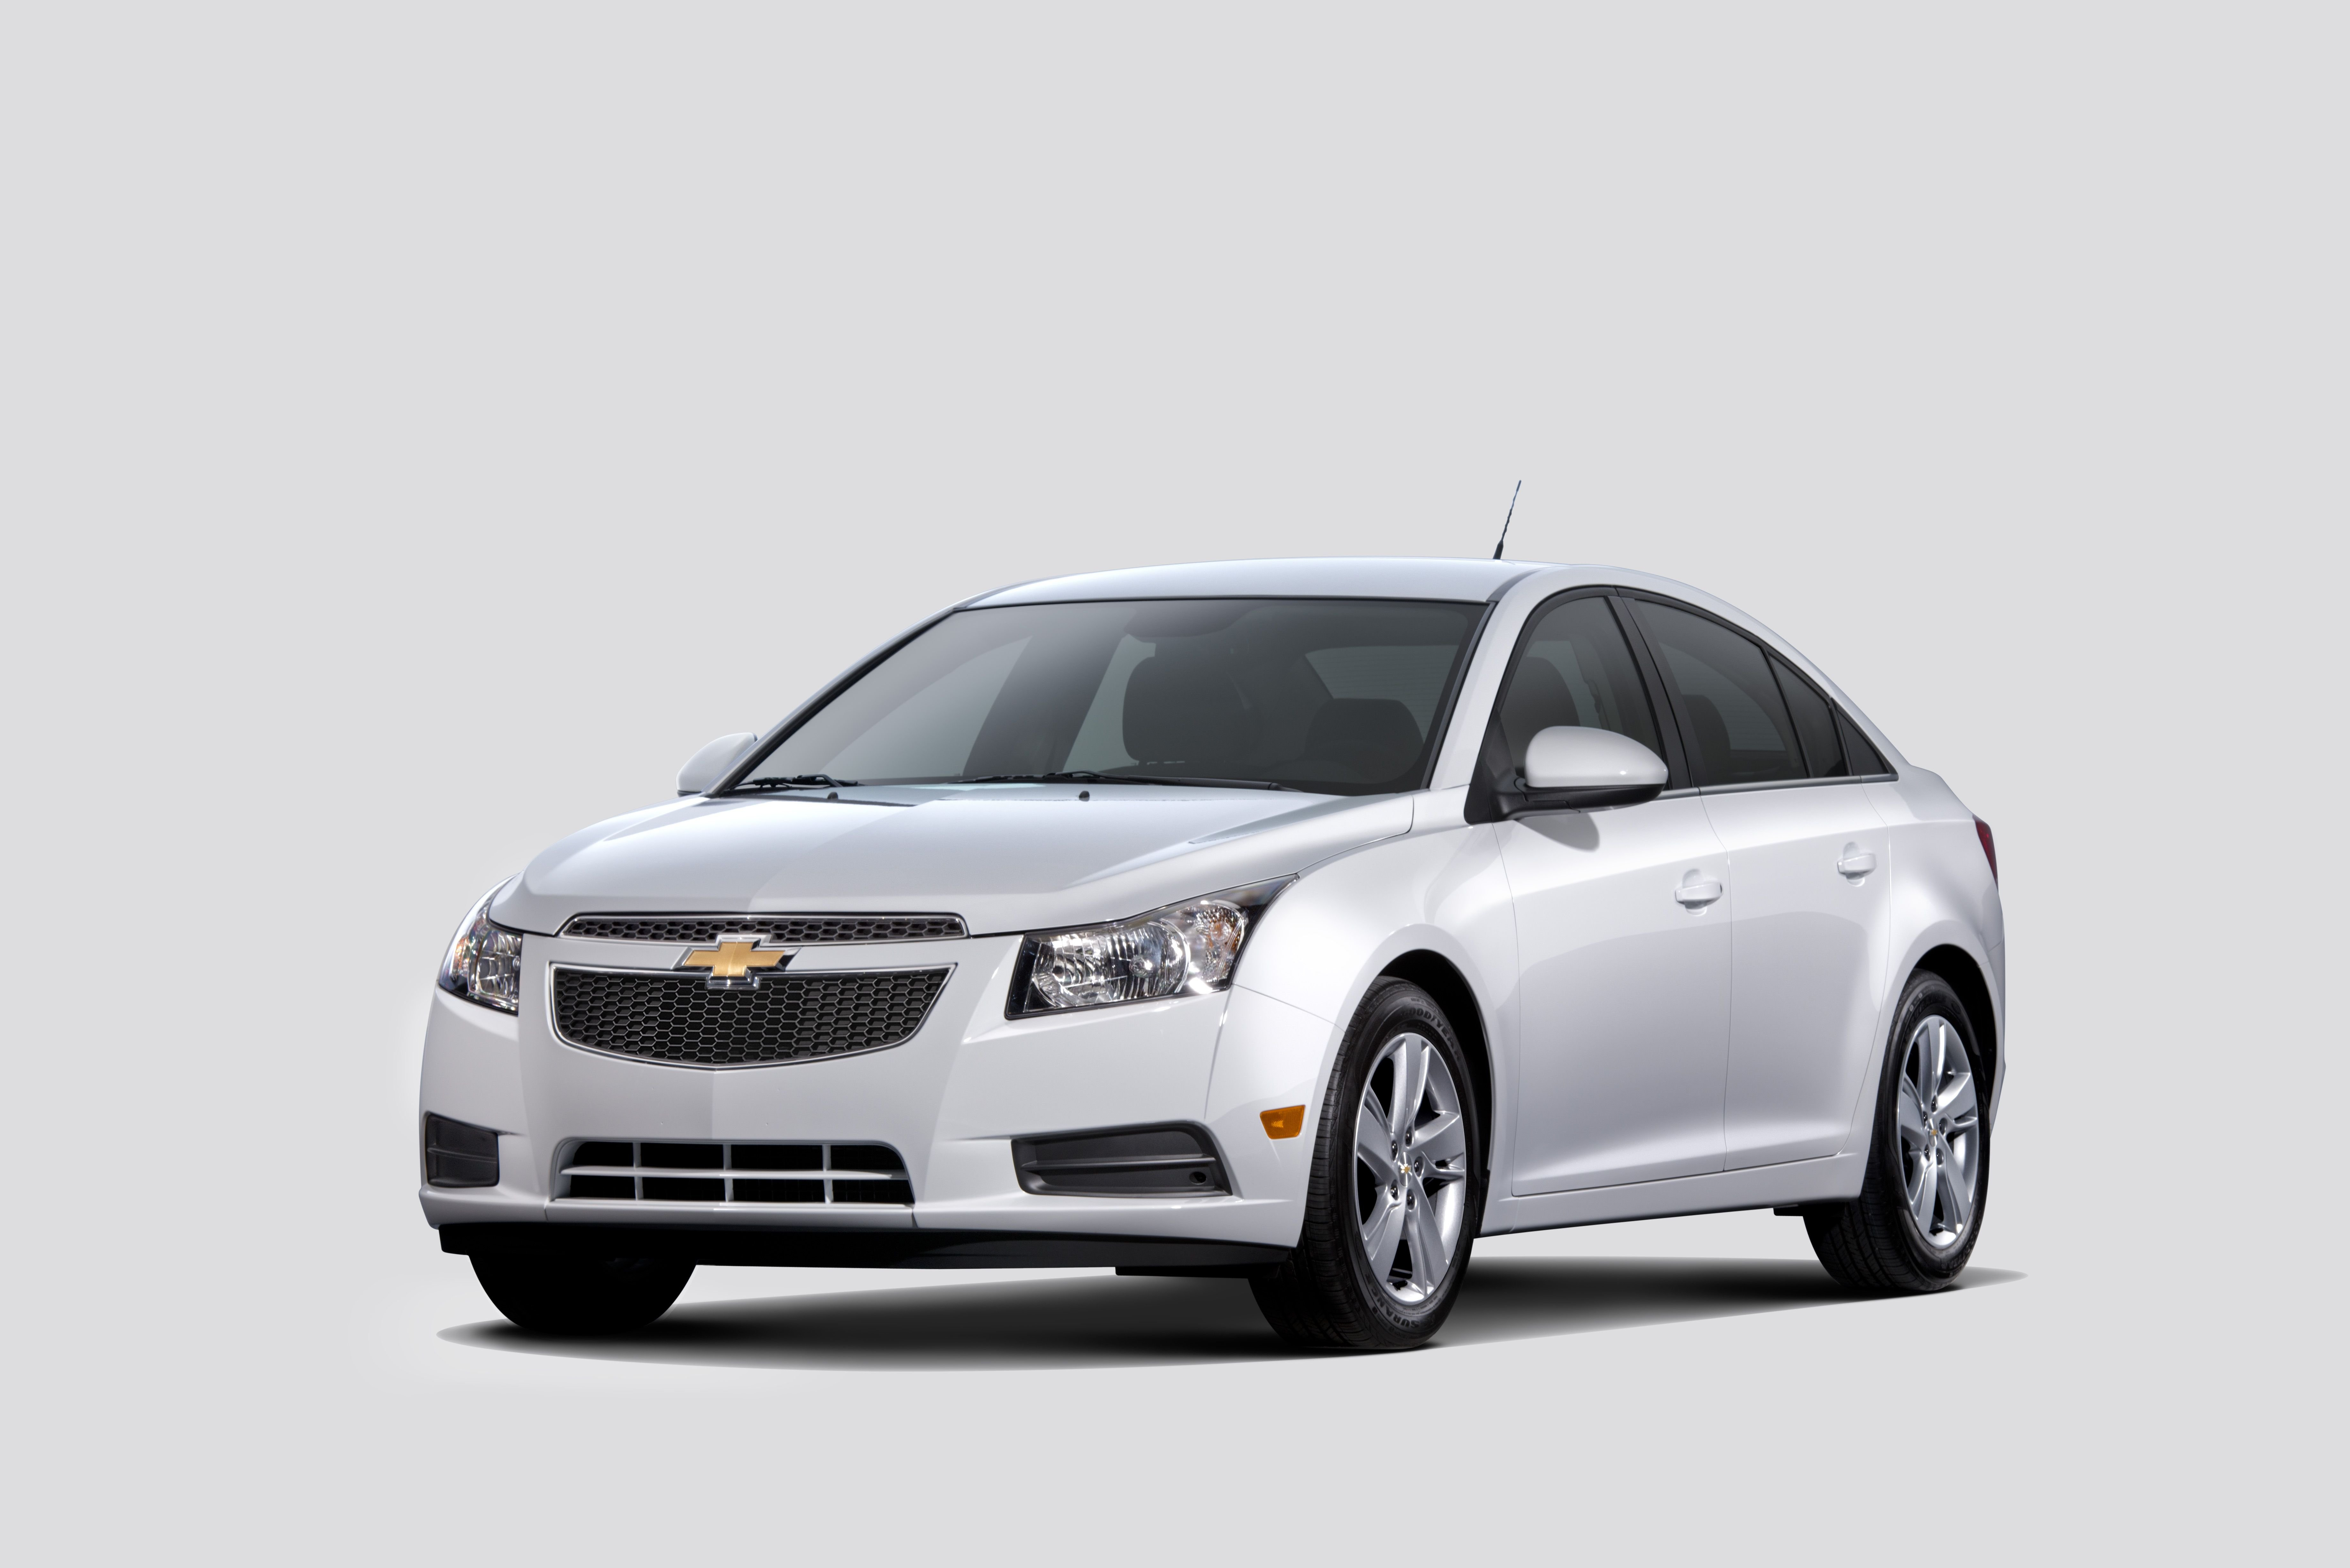 Chevrolet Debuts 2014 Cruze Clean Turbo Diesel at Chicago Auto Show